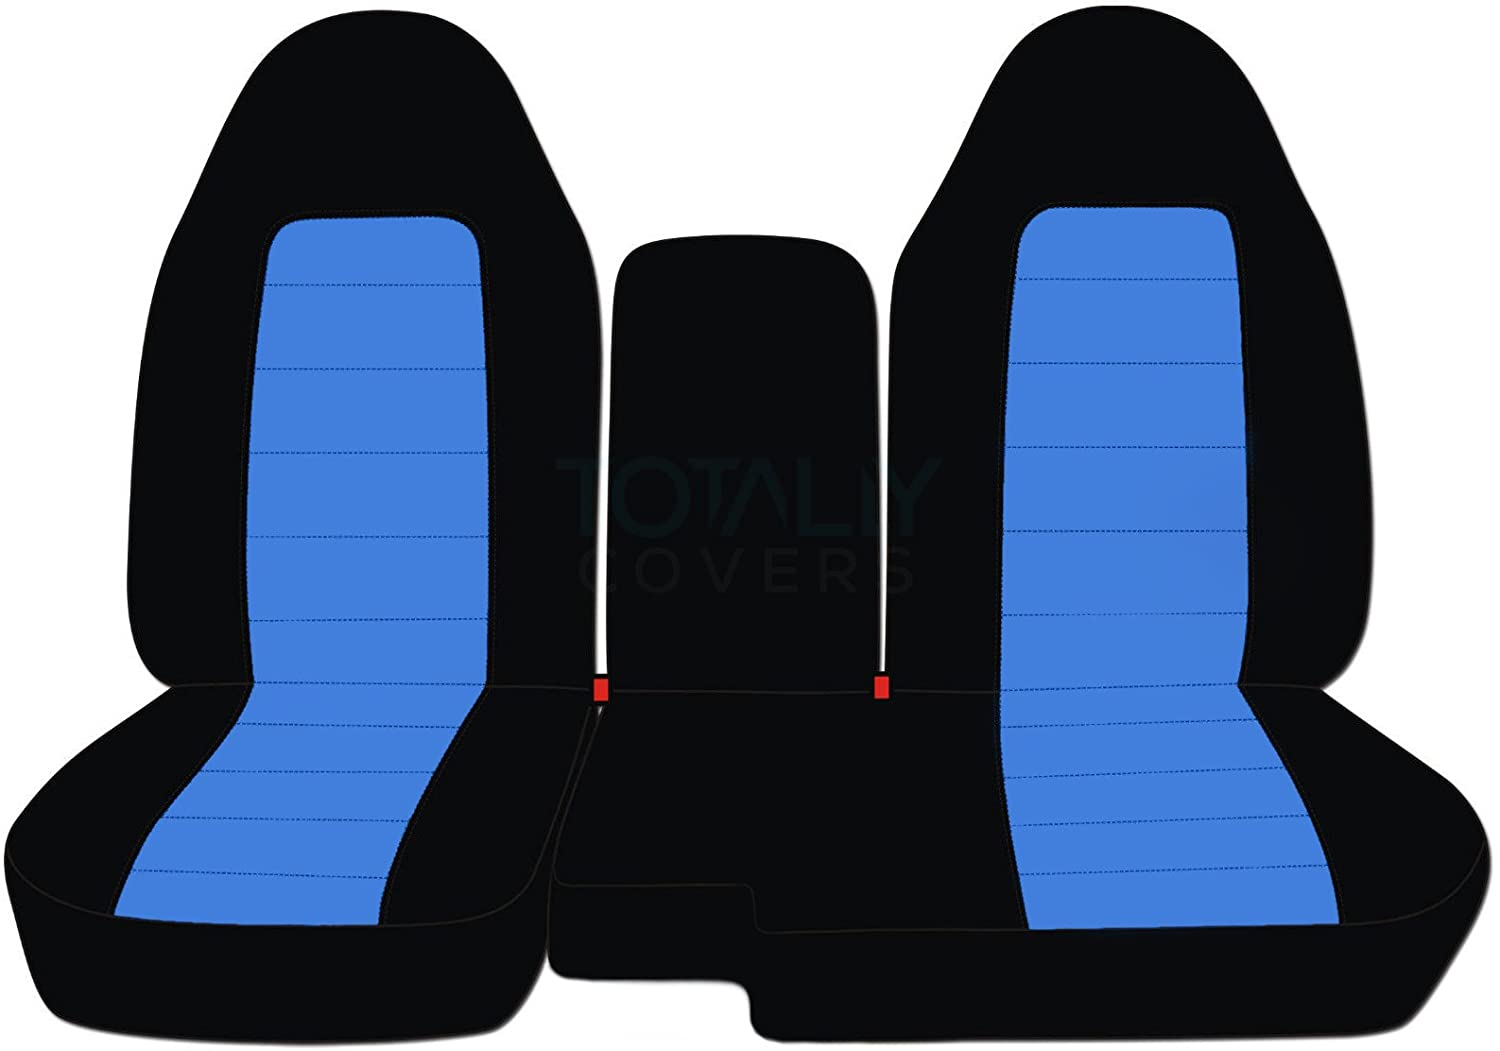 Designcovers 2004-2012 Ford Ranger/Mazda B-Series Two-Tone Truck Seat Covers (60/40 Split Bench) with Center Console/Armrest Cover: Black & Charcoal (21 Colors) 2005 2006 2007 2008 2009 2010 2011